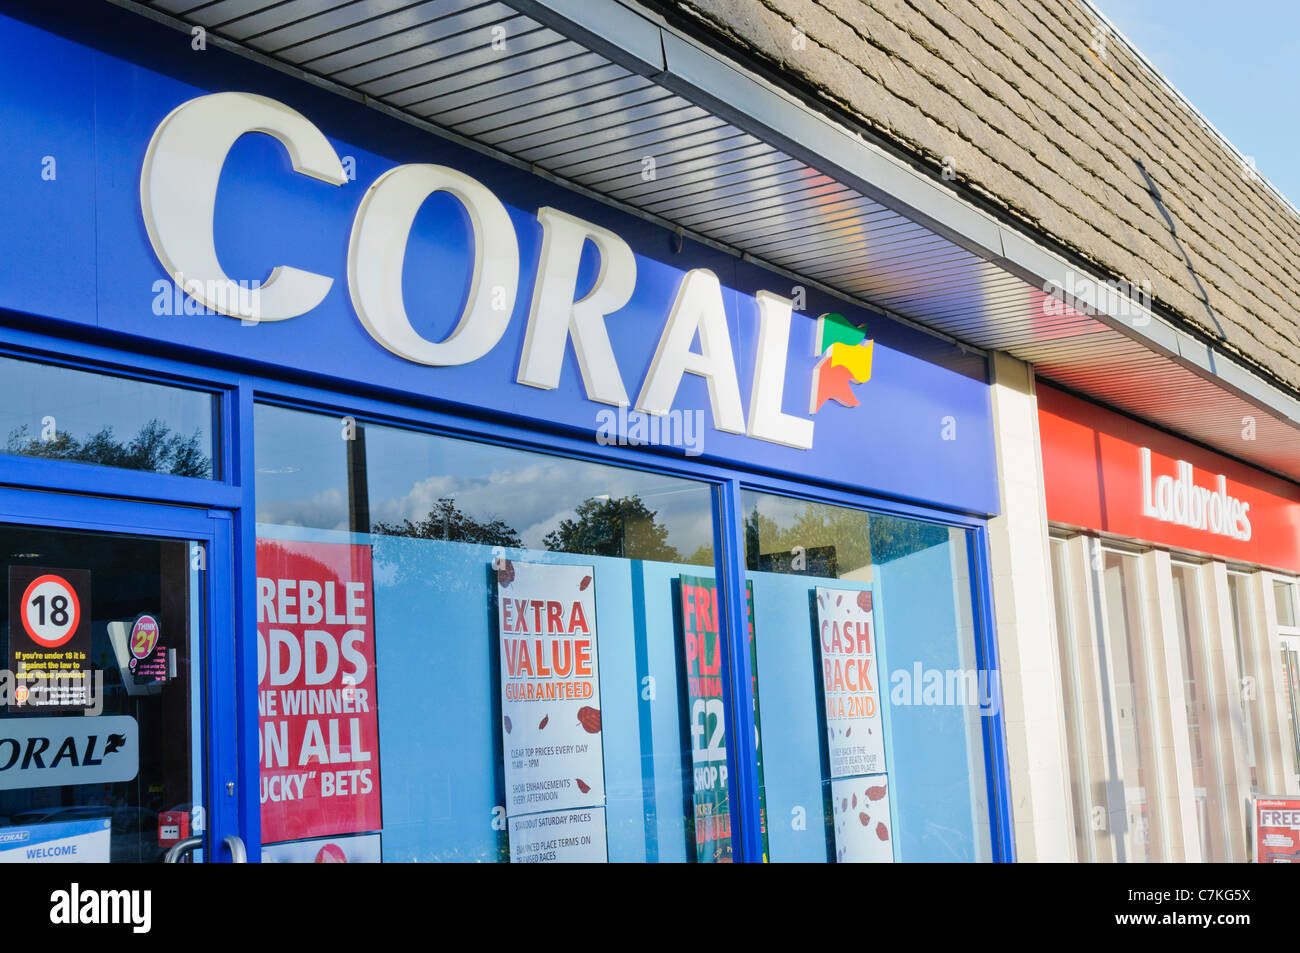 Coral and Ladbrokes betting shops beside each other - Stock Image